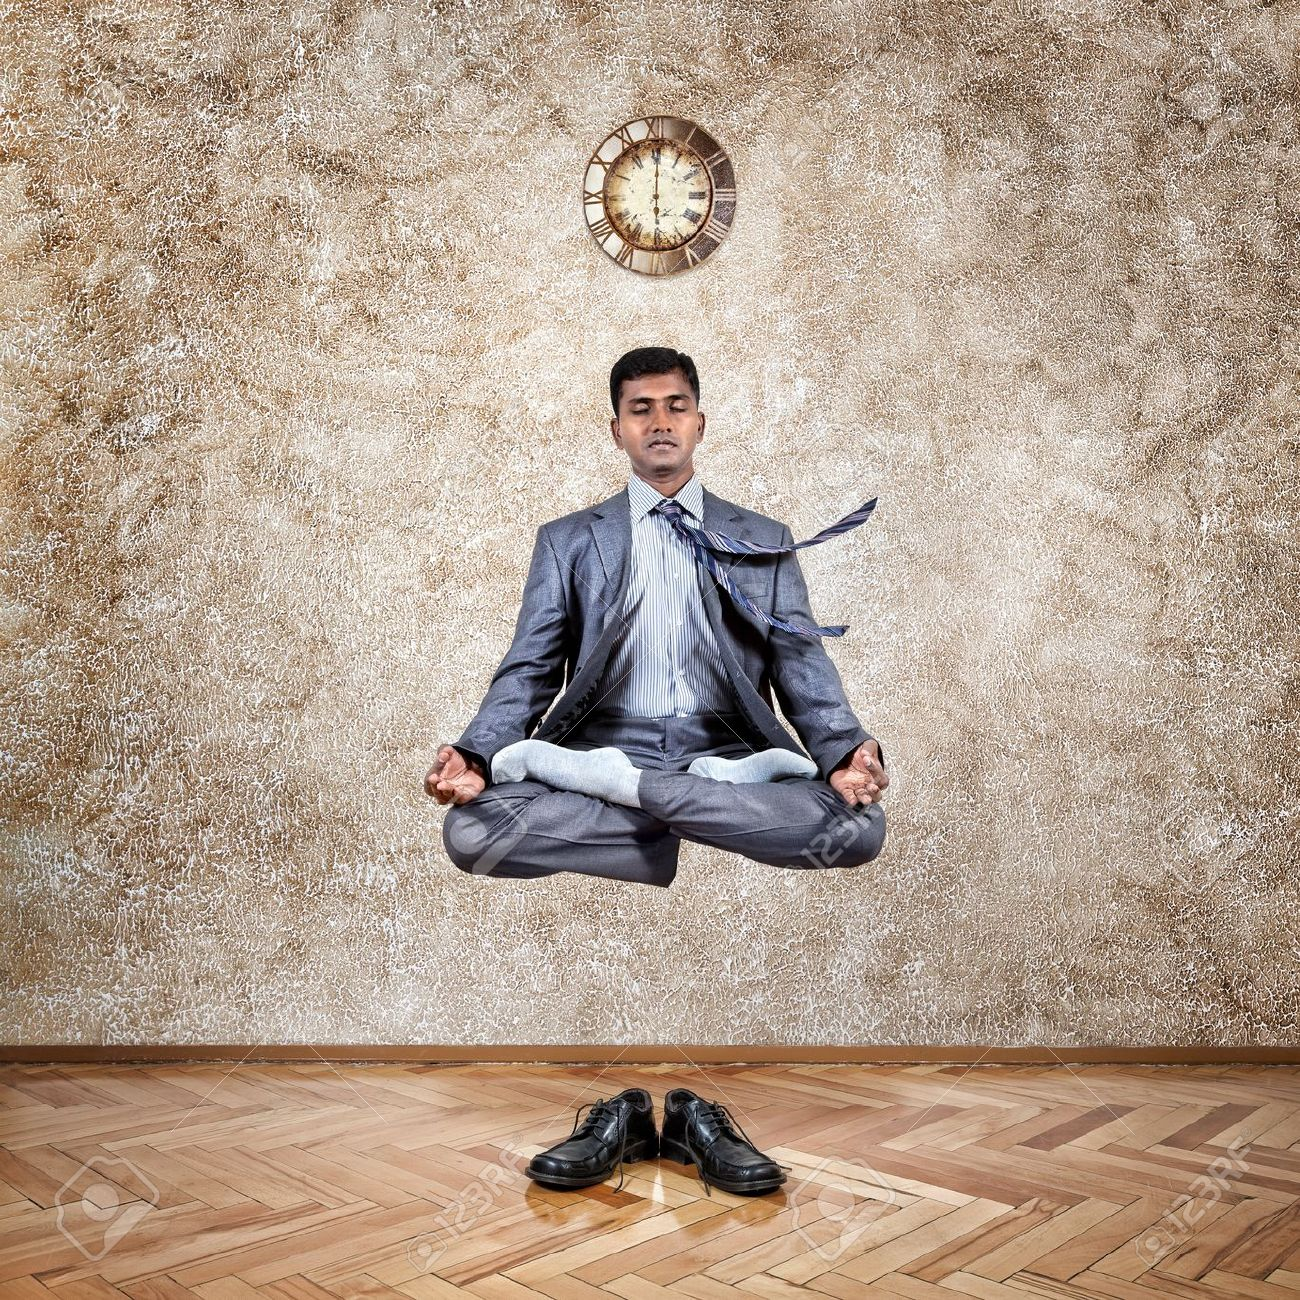 Meditation Businessman Office. Levitation Indian Businessman Lotus Pose The  Office Near Wall With Clock And